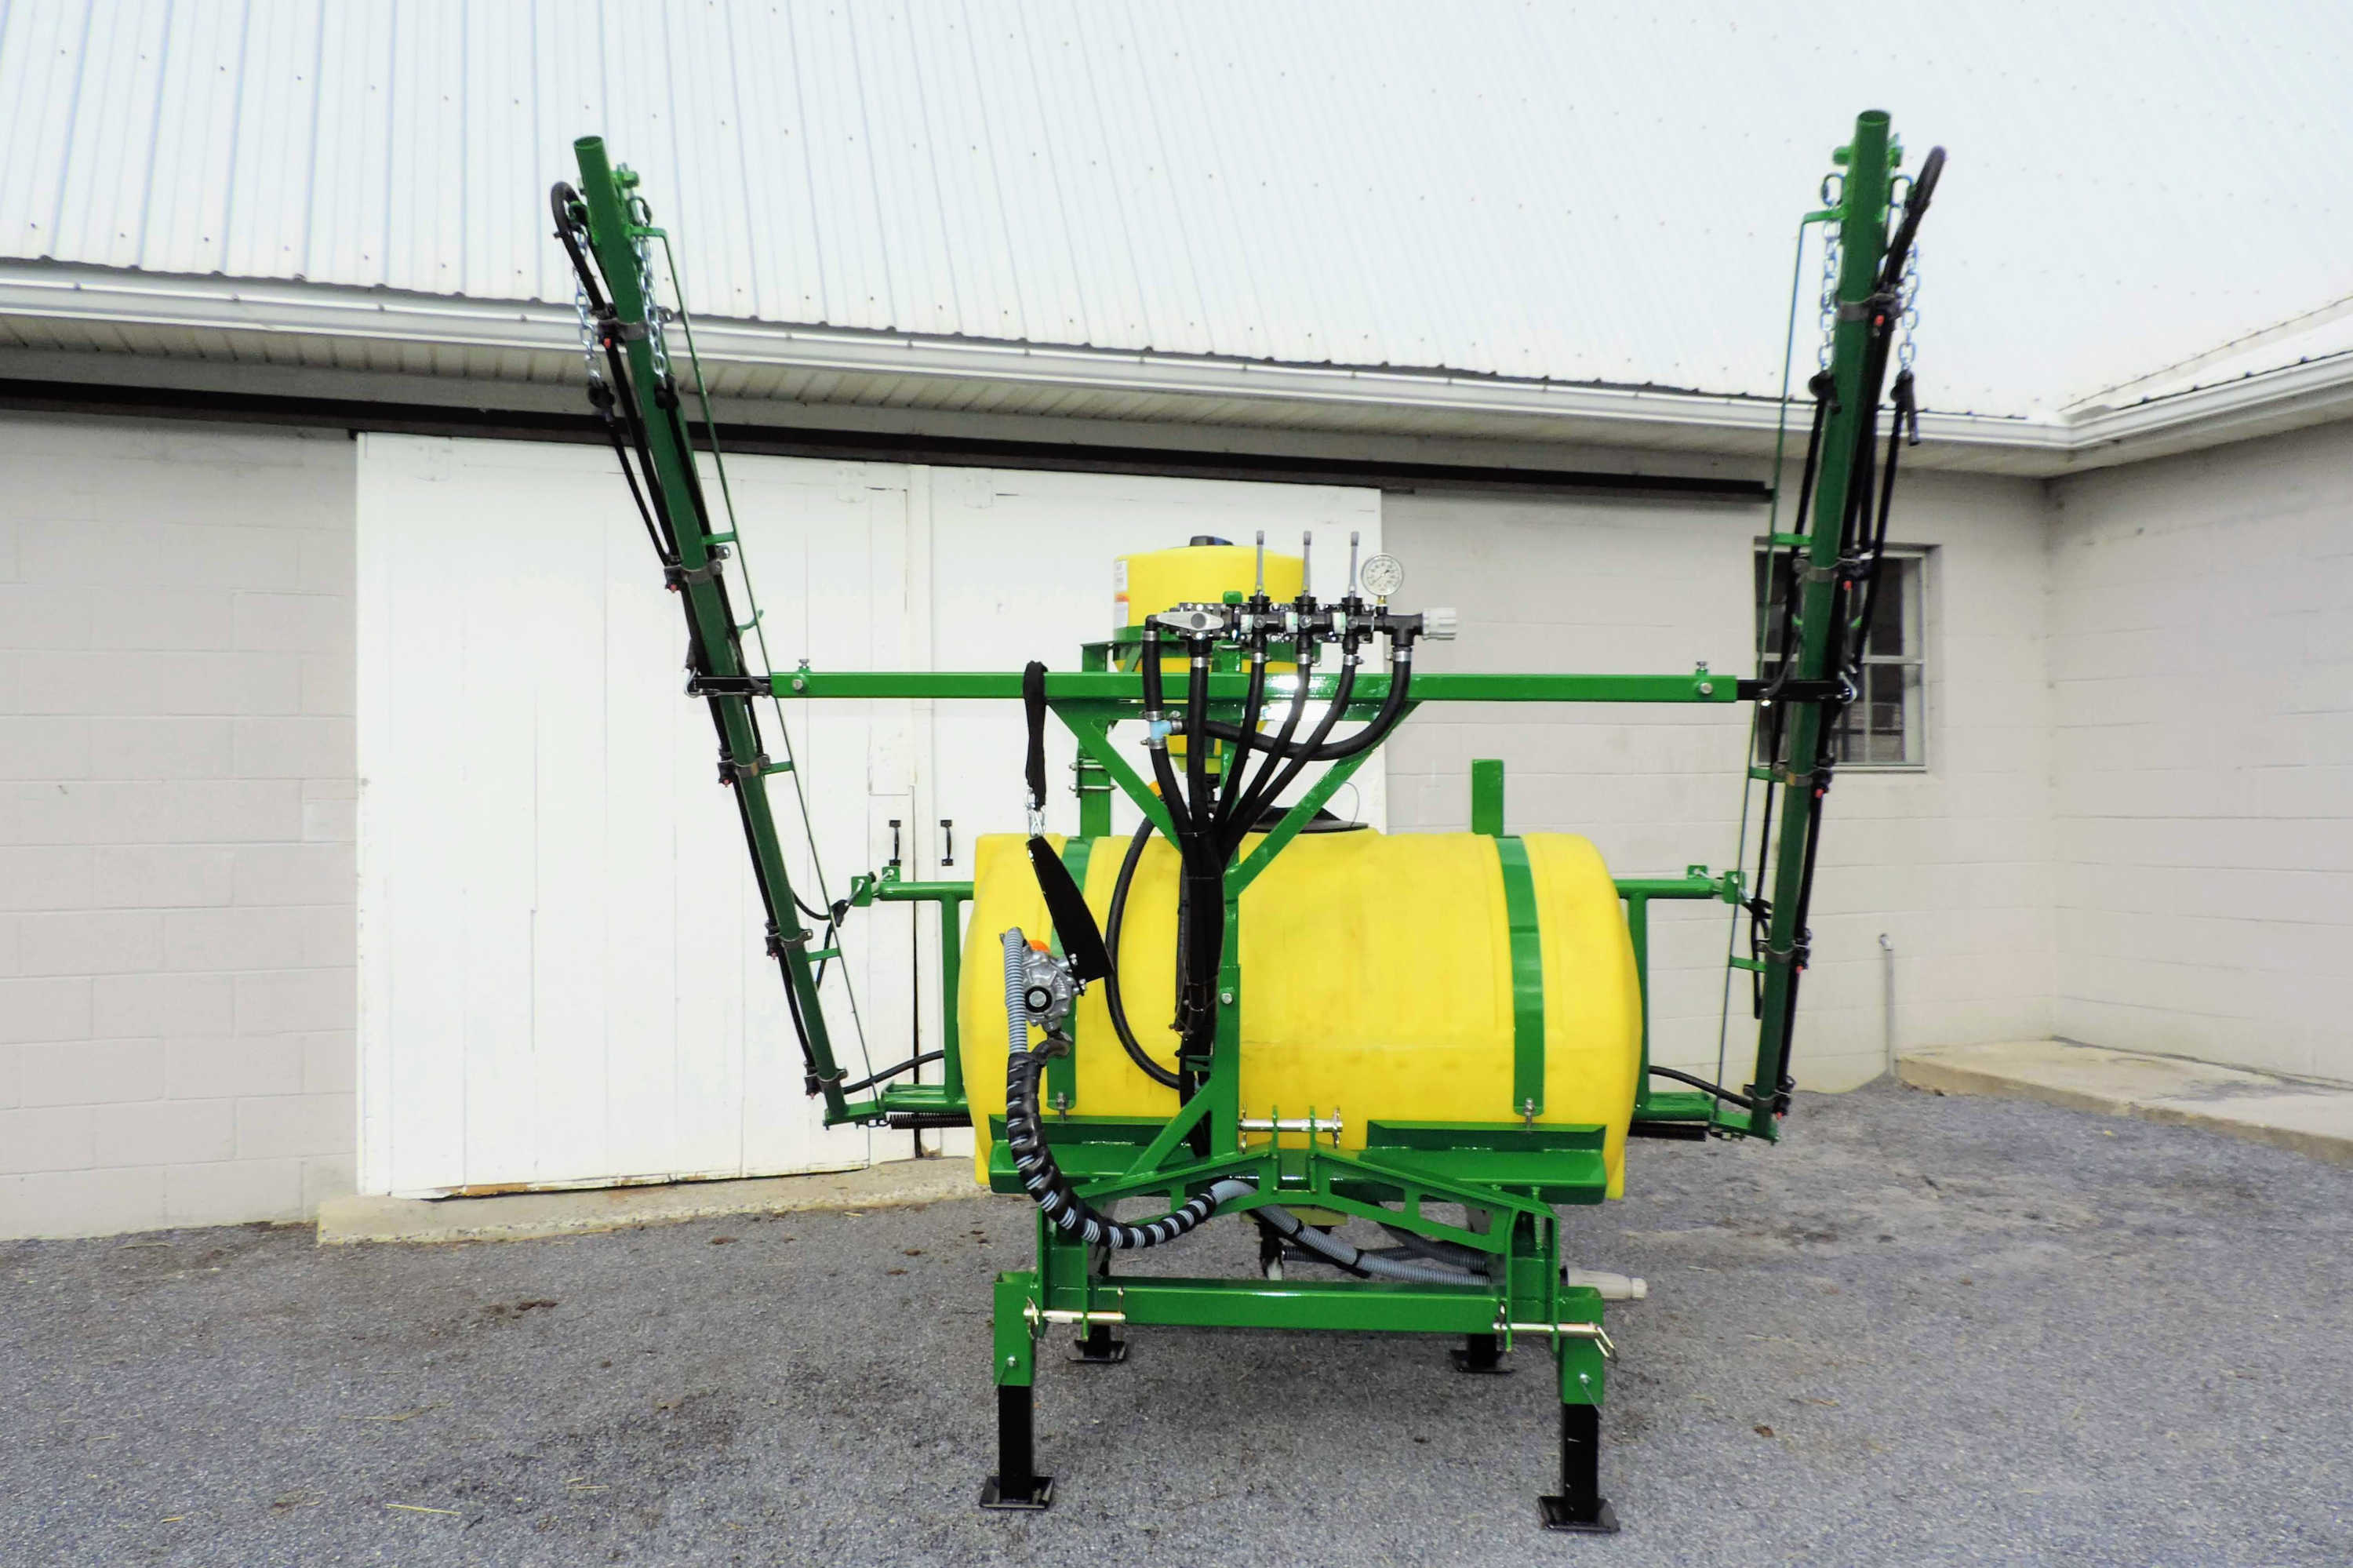 150 gallon 3-point Hitch Mounted Sprayer with 30' manual-fold booms